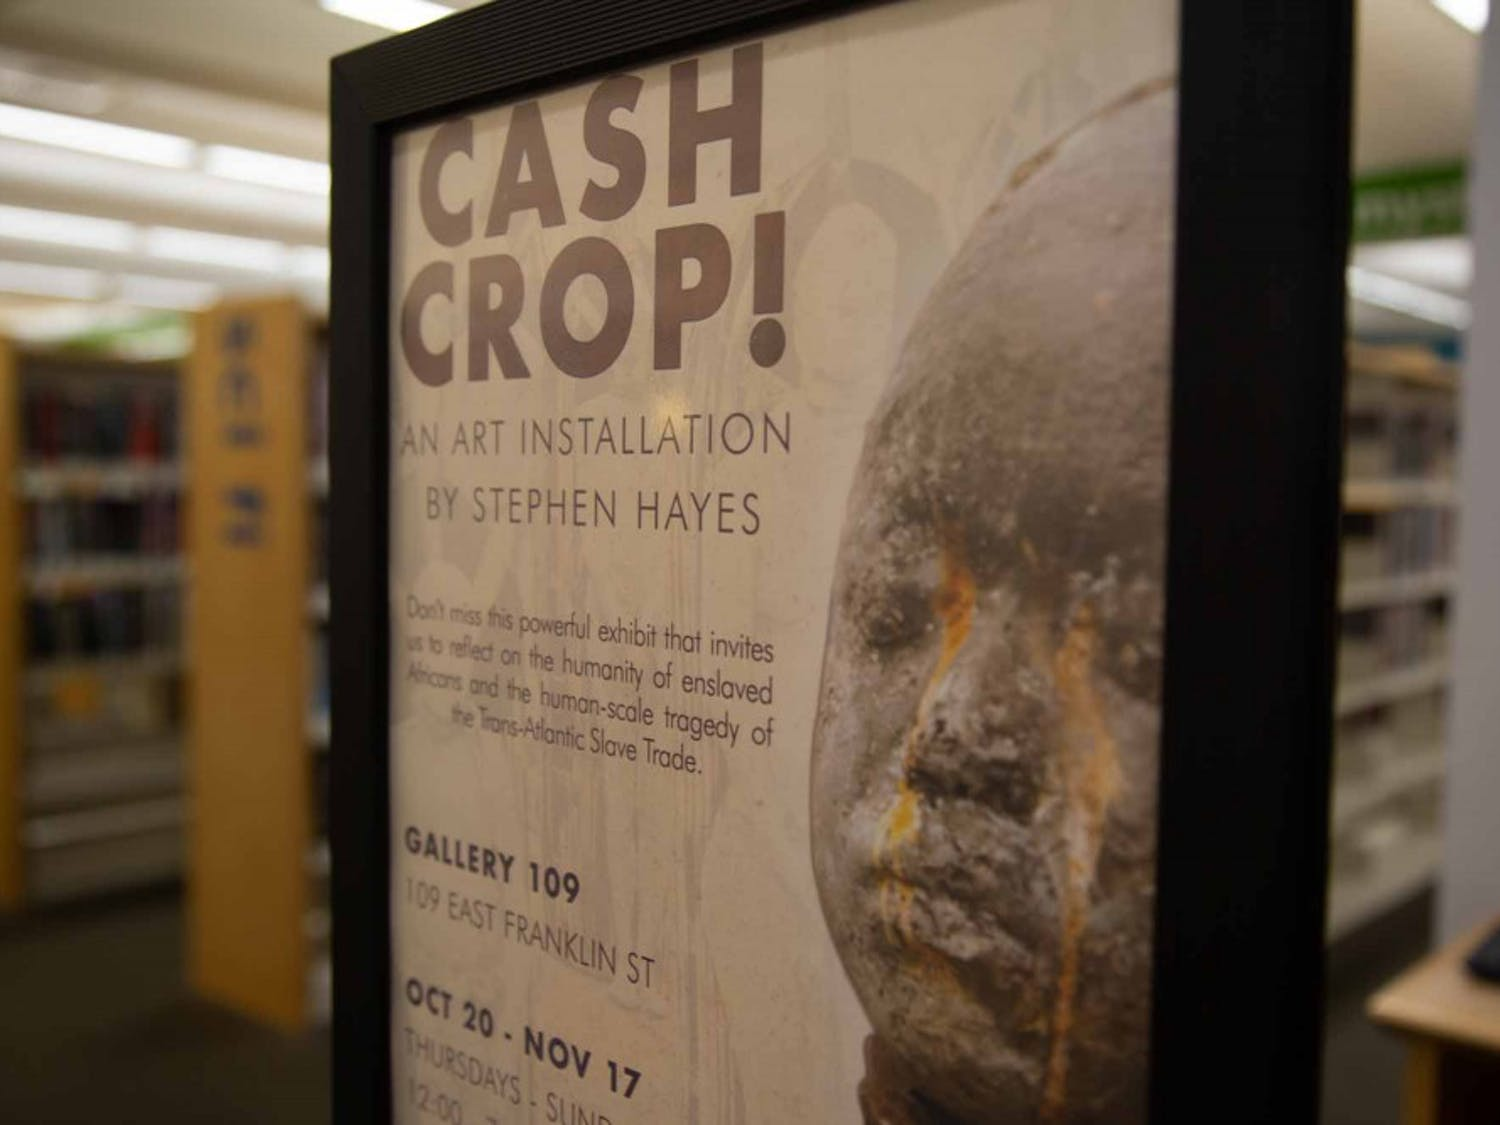 """The """"Cash Crop!"""" exhibit at 109 E. Franklin Street opened Oct. 20, 2019 and it will close on Nov. 18, 2019."""